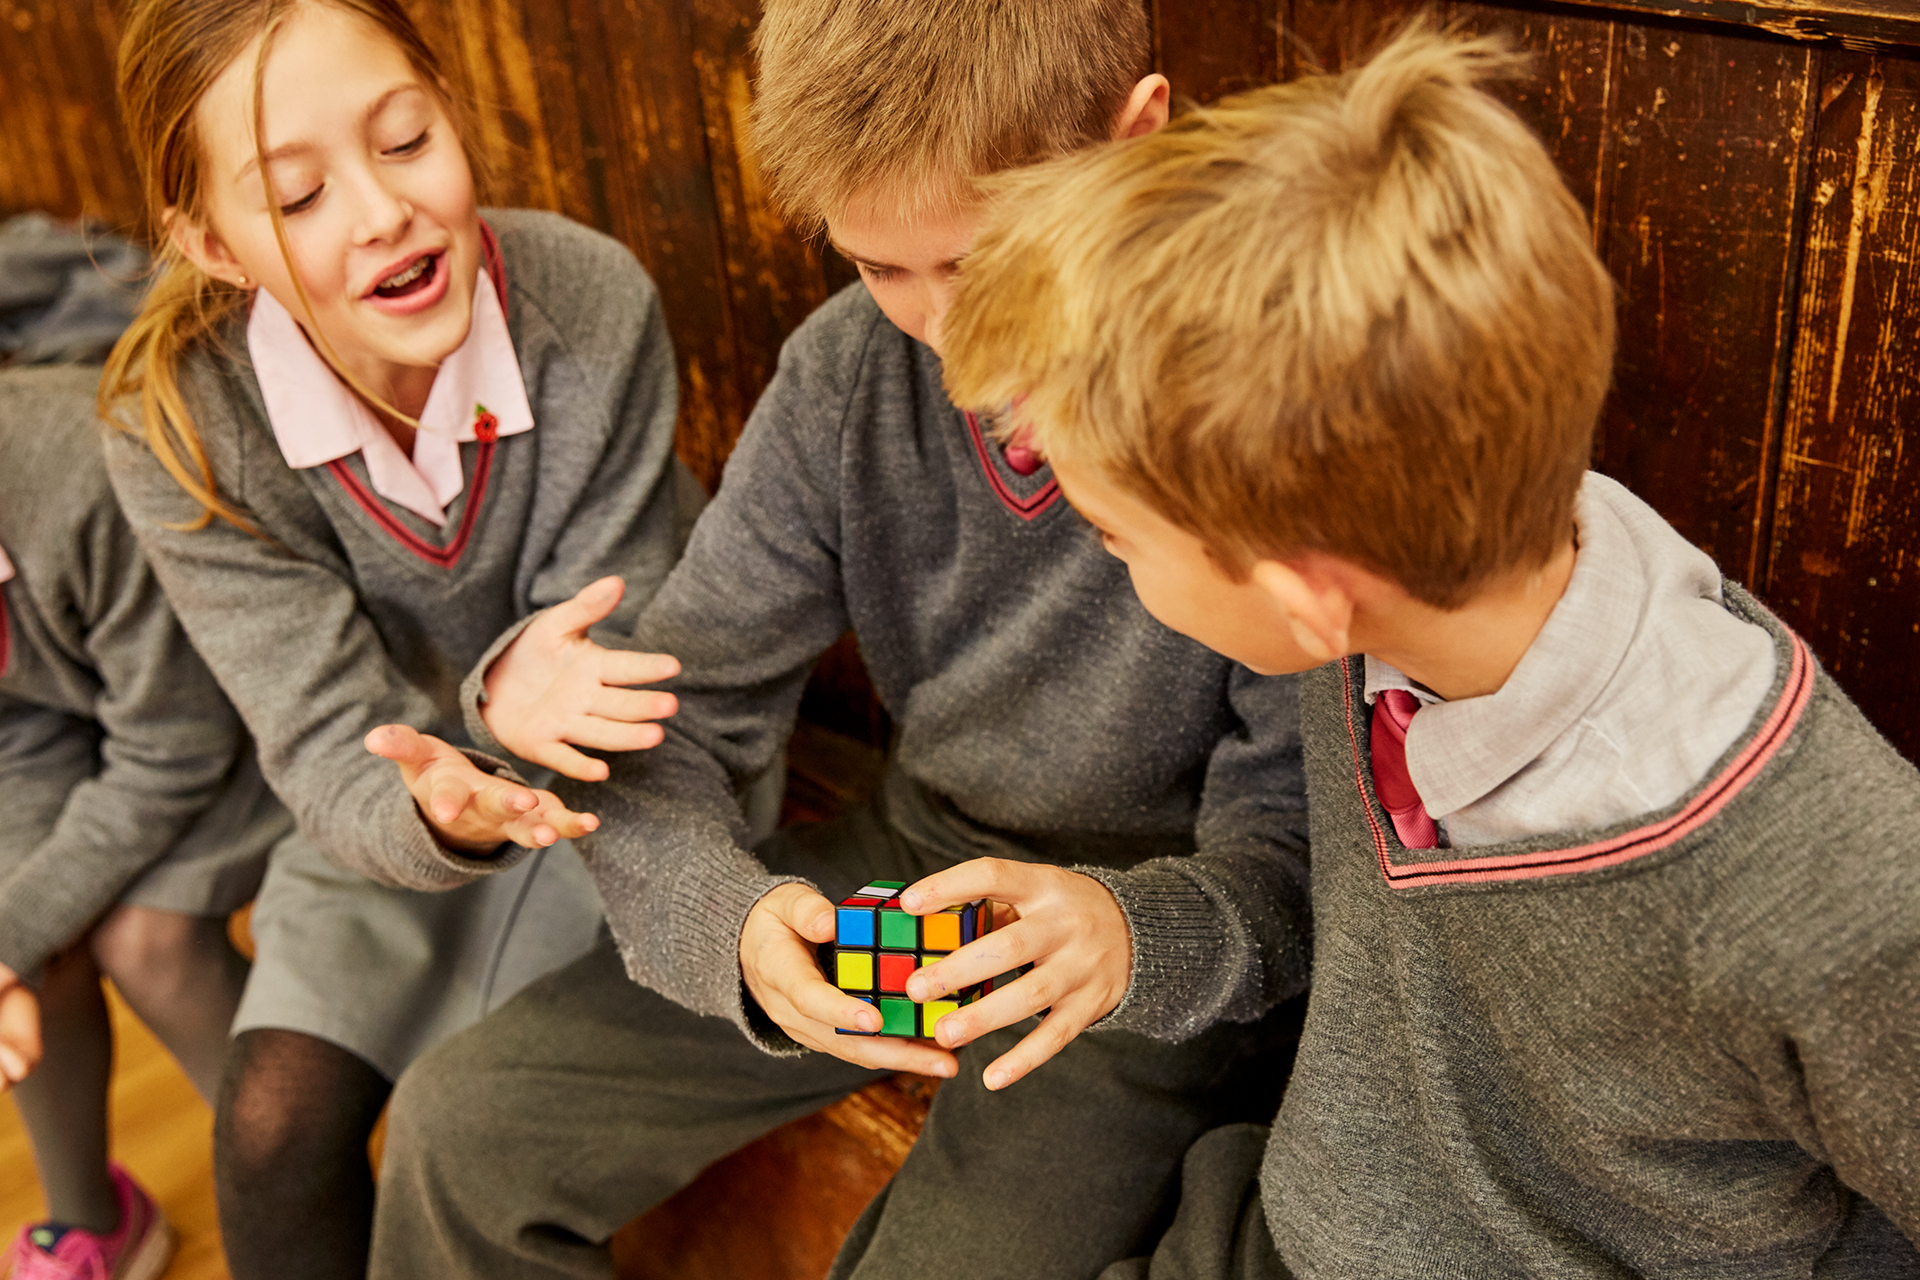 School children laughing with rubix cube